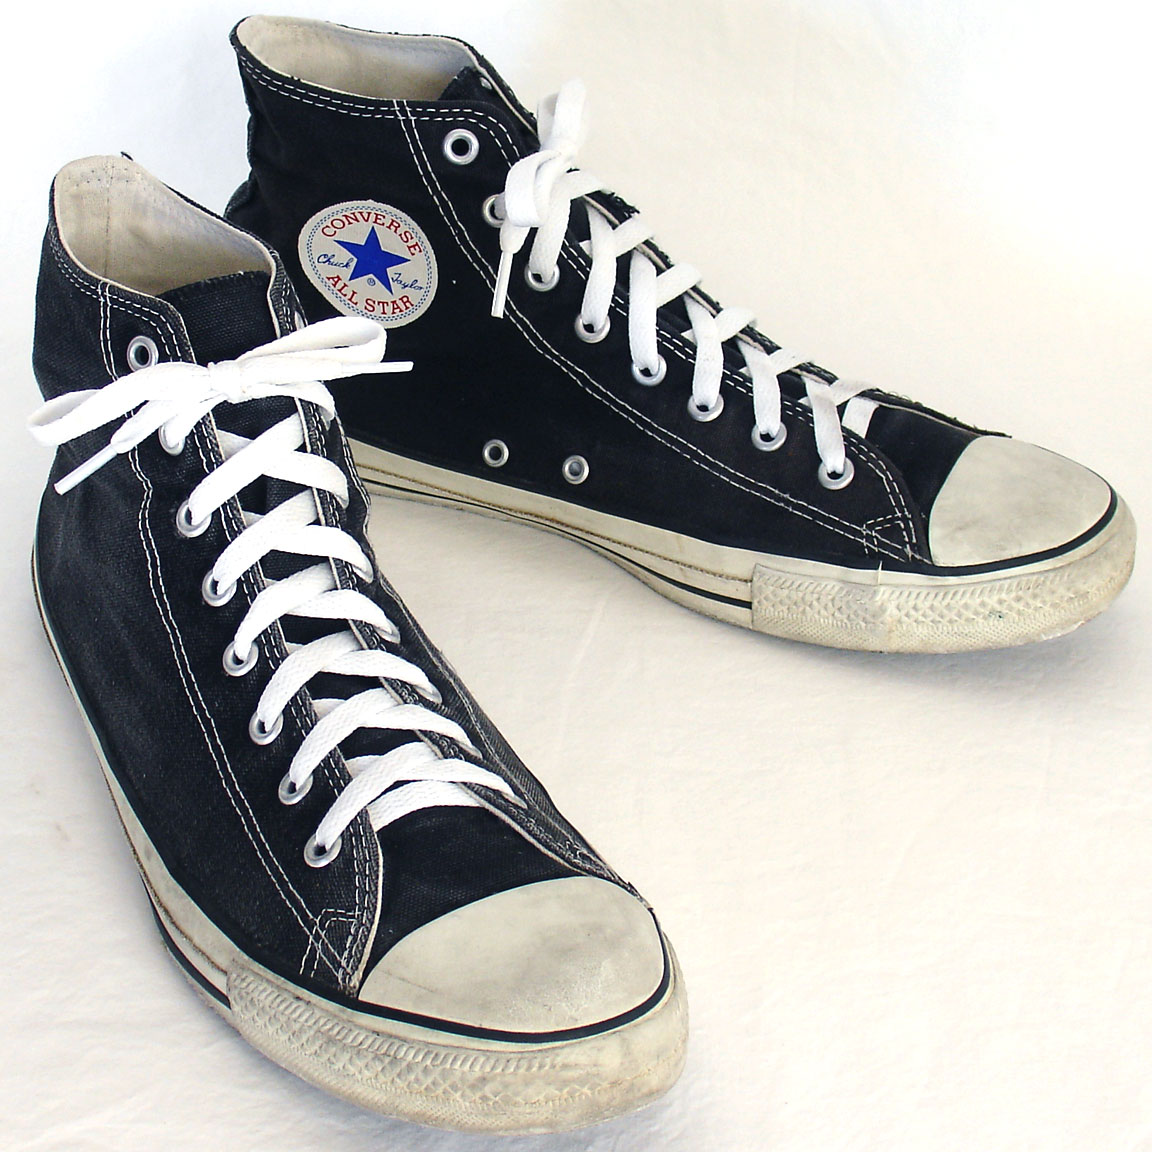 2dc6e2674035 Vintage American-made Converse All Star Chuck Taylor black hi-top shoes for  sale